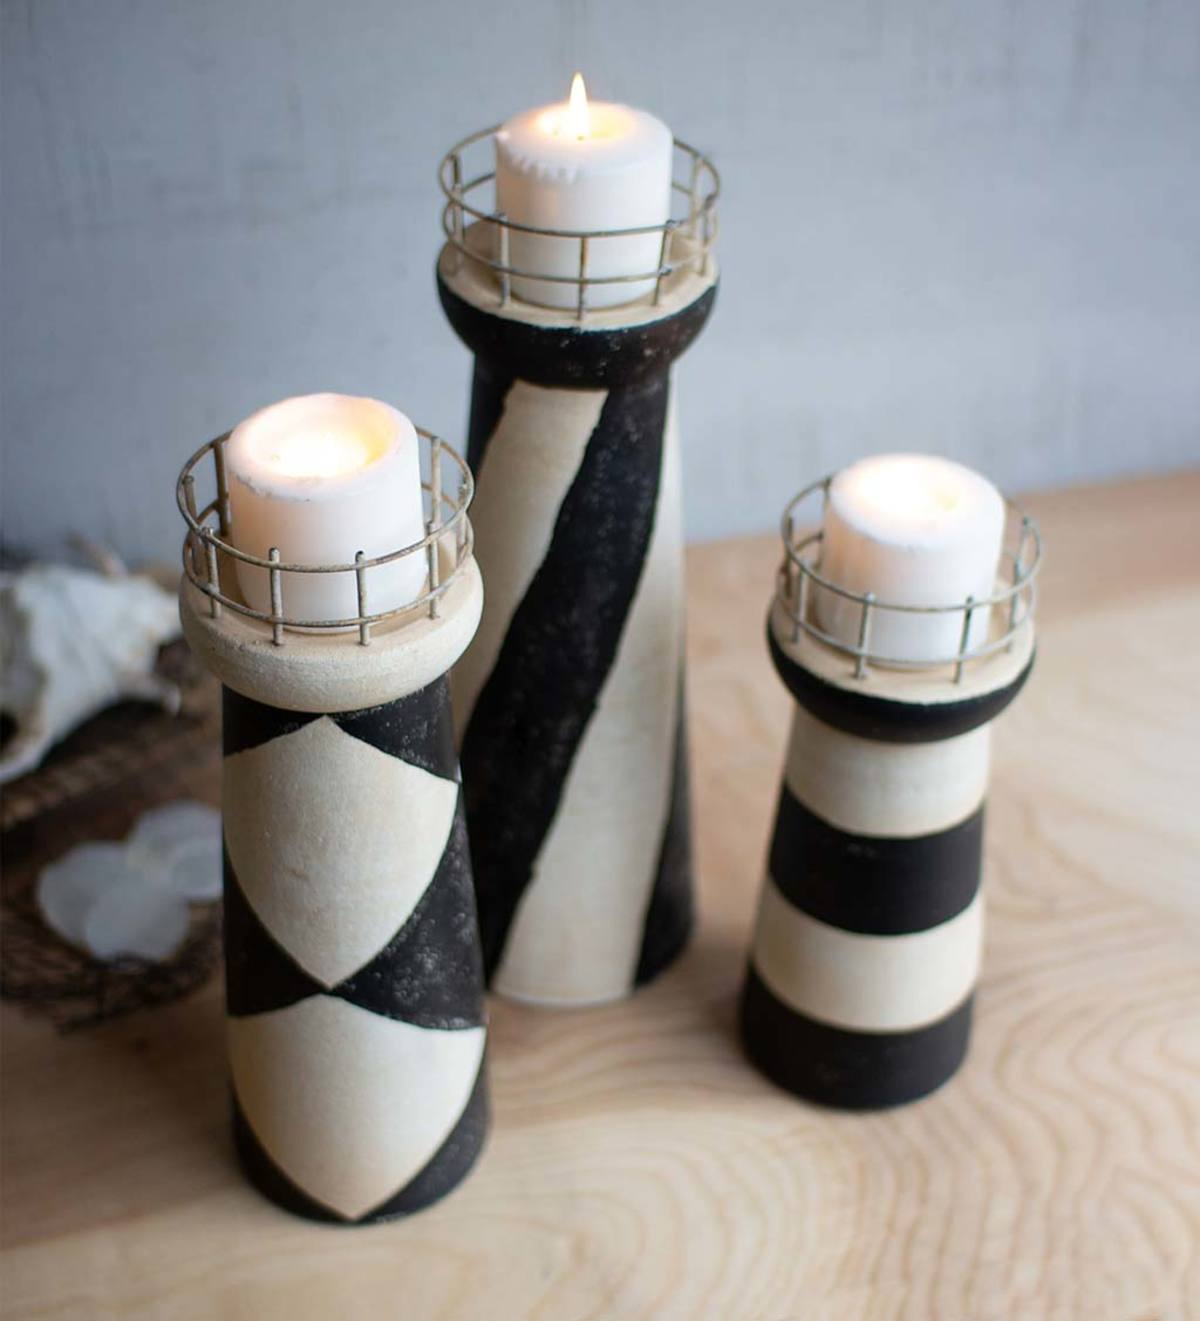 Ceramic Lighthouse Candle Holders, Set of 3